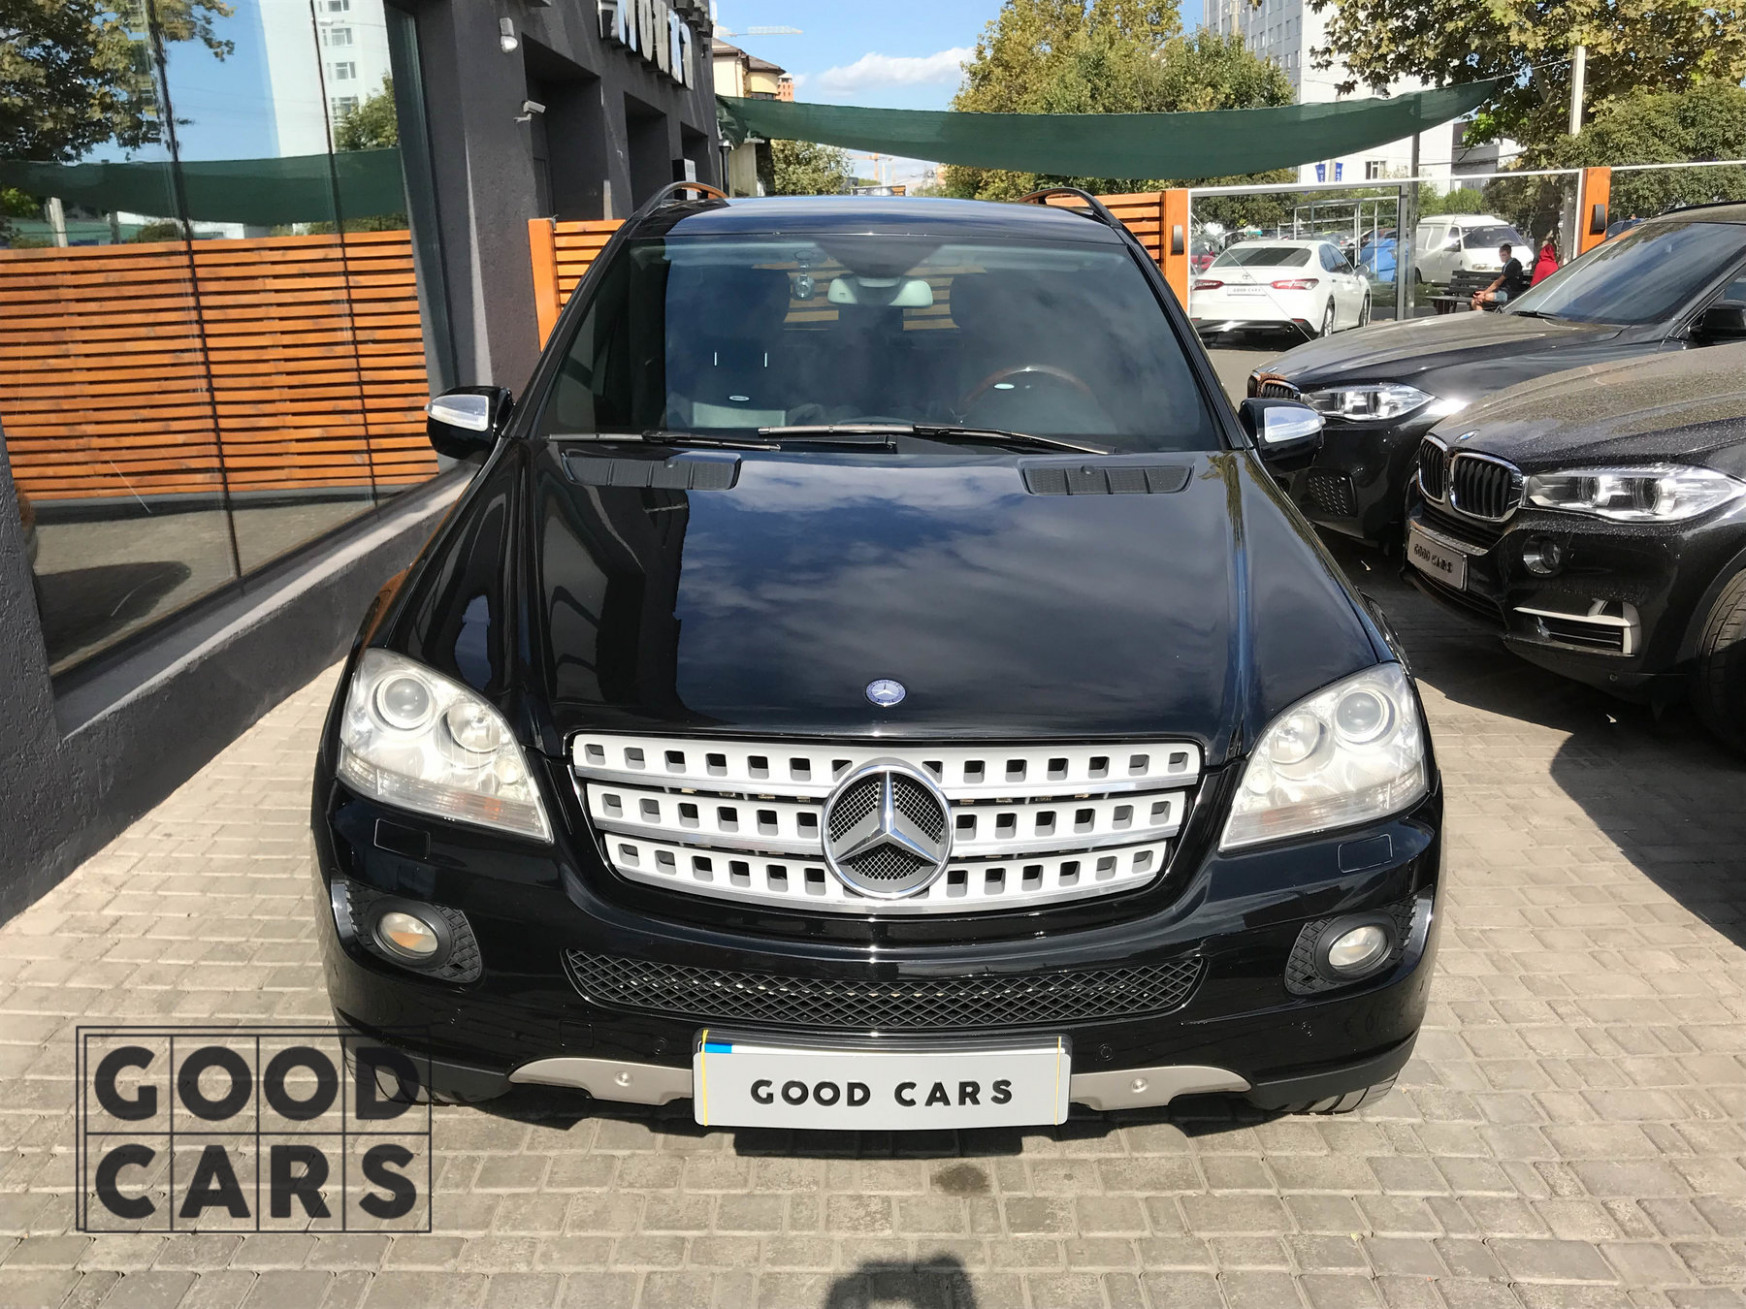 Ratings 2022 Mercedes ML Class 400